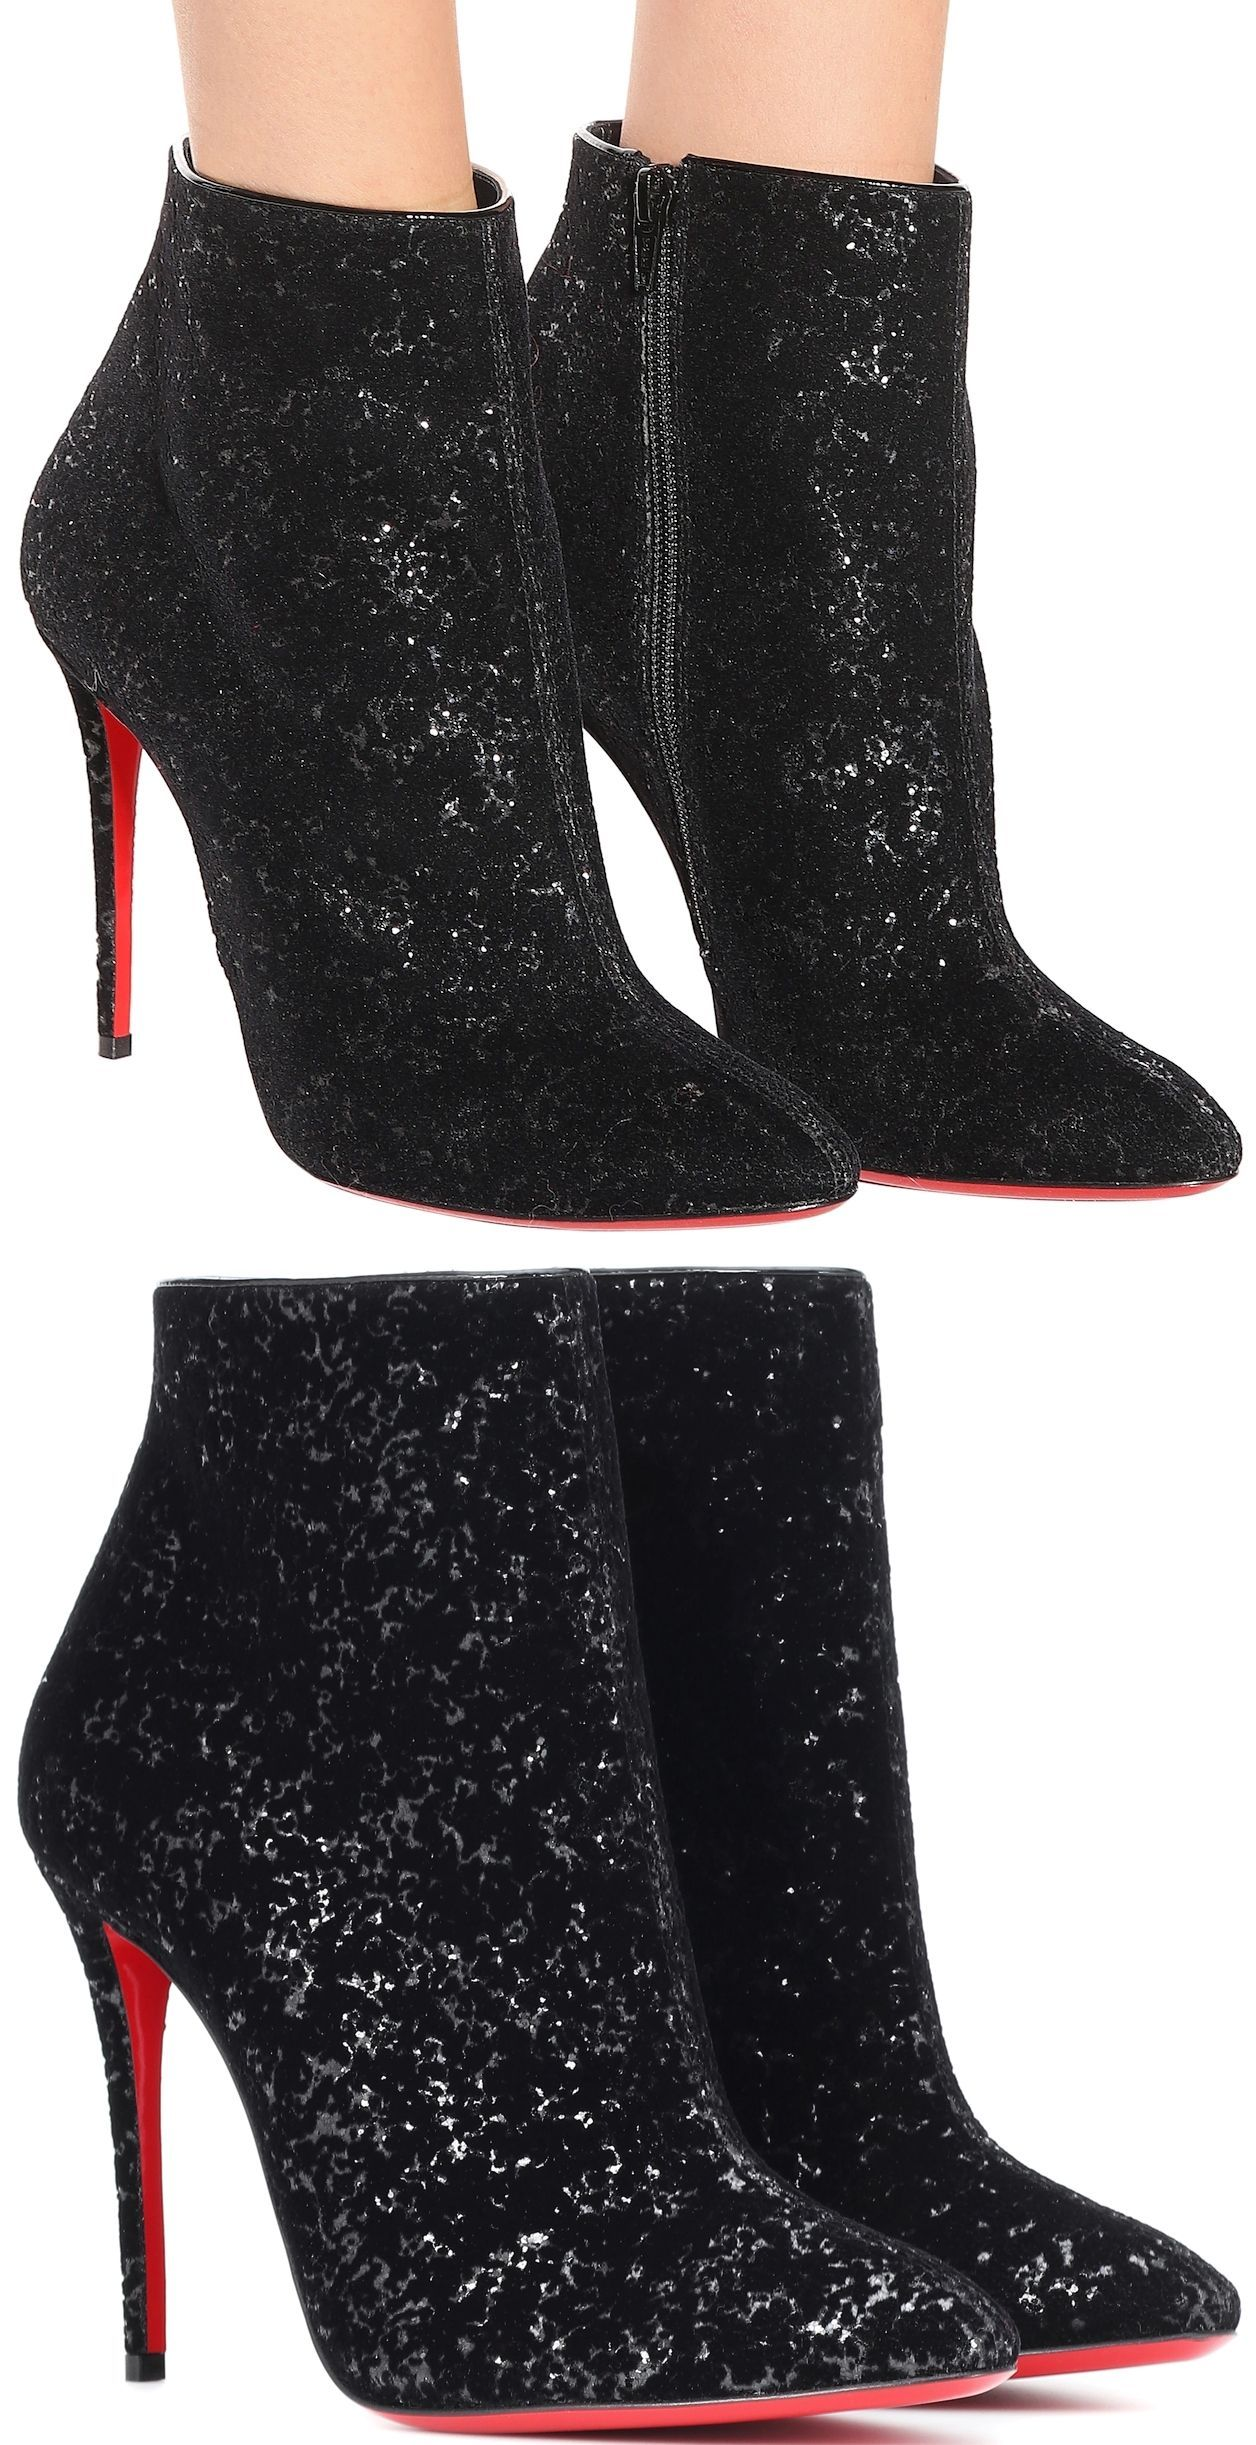 8869a9ebe60e Ankle Boots · Inject each step with a dose of high-octane glamour courtesy  of Christian Louboutin s Eloise